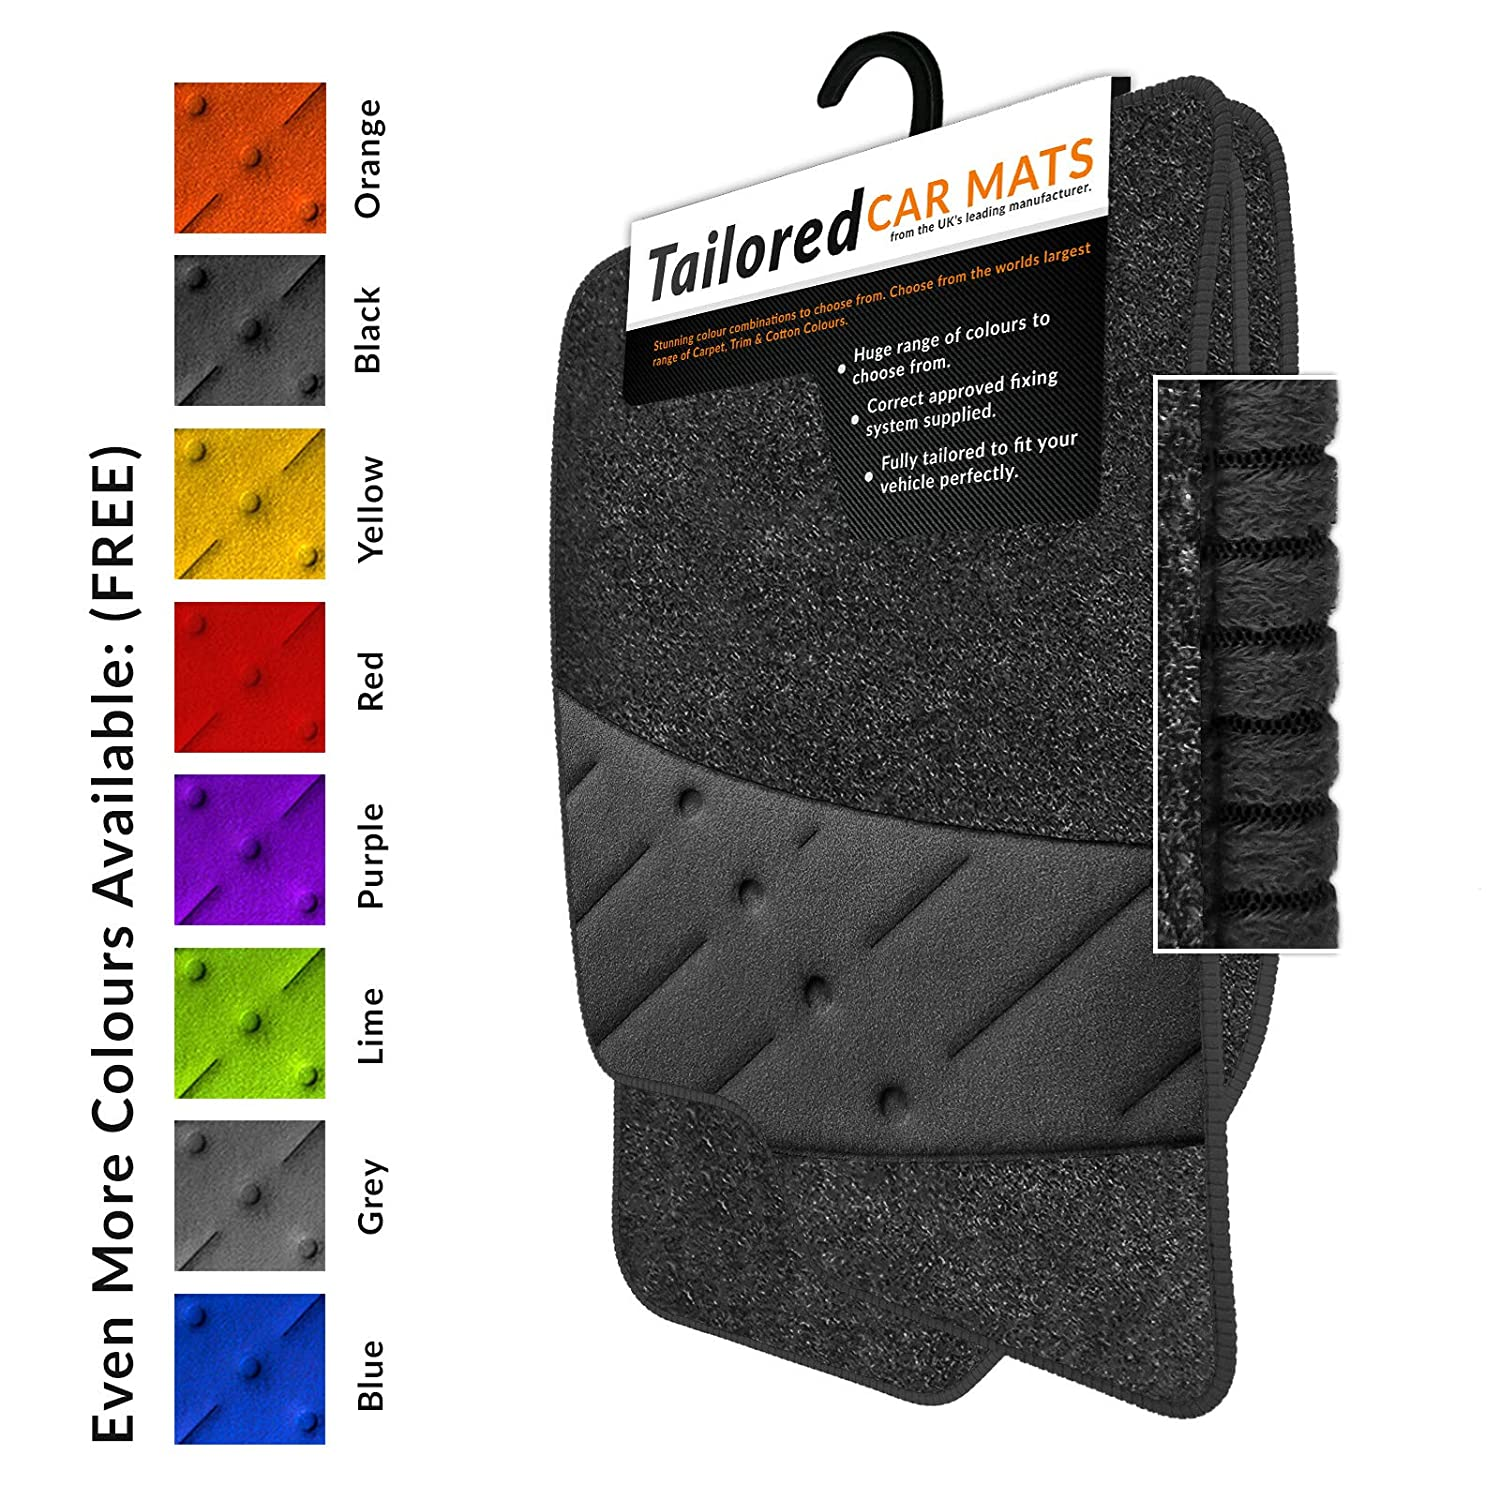 2008-2011 Anthracite Tailored Car Mats /& Blue Trim /& Blue Double Ultra Thick Full Width Heel Pad Car Mats To Fit Fiesta MK7